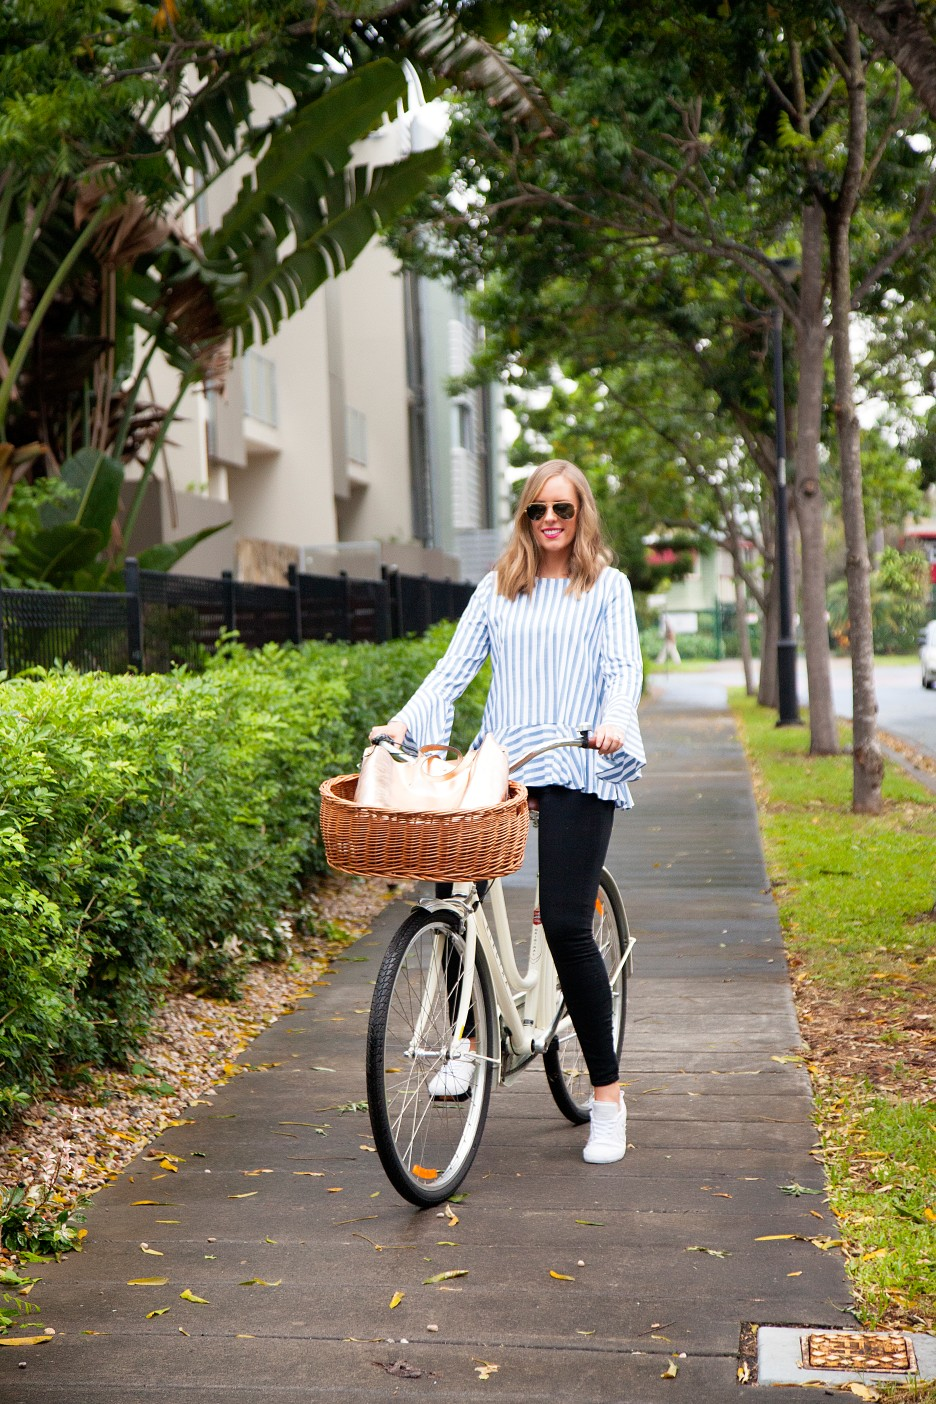 6 Stripe Top Black Jeans and White Converse Sneakers fashion blogger electra bike with basket rose gold tote handbag